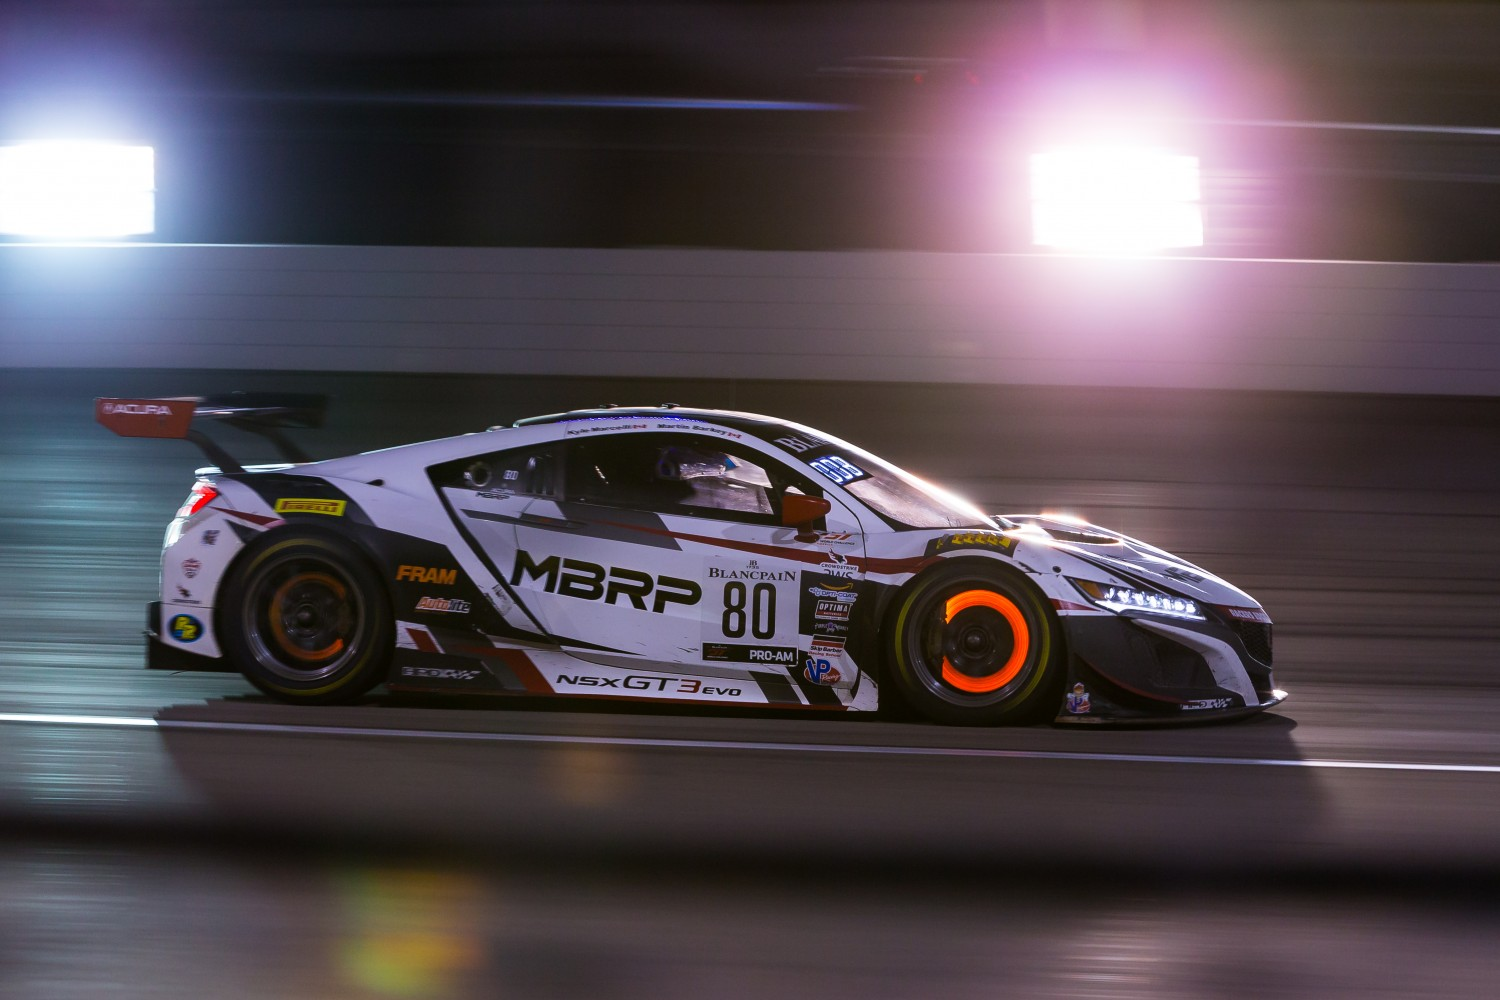 #80 Acura NSX of Martin Barkey and Kyle Marcelli with Racers Edge Motorsports  2019 Blancpain GT World Challenge America - Las Vegas, Las Vegas NV | Fabian Lagunas/SRO